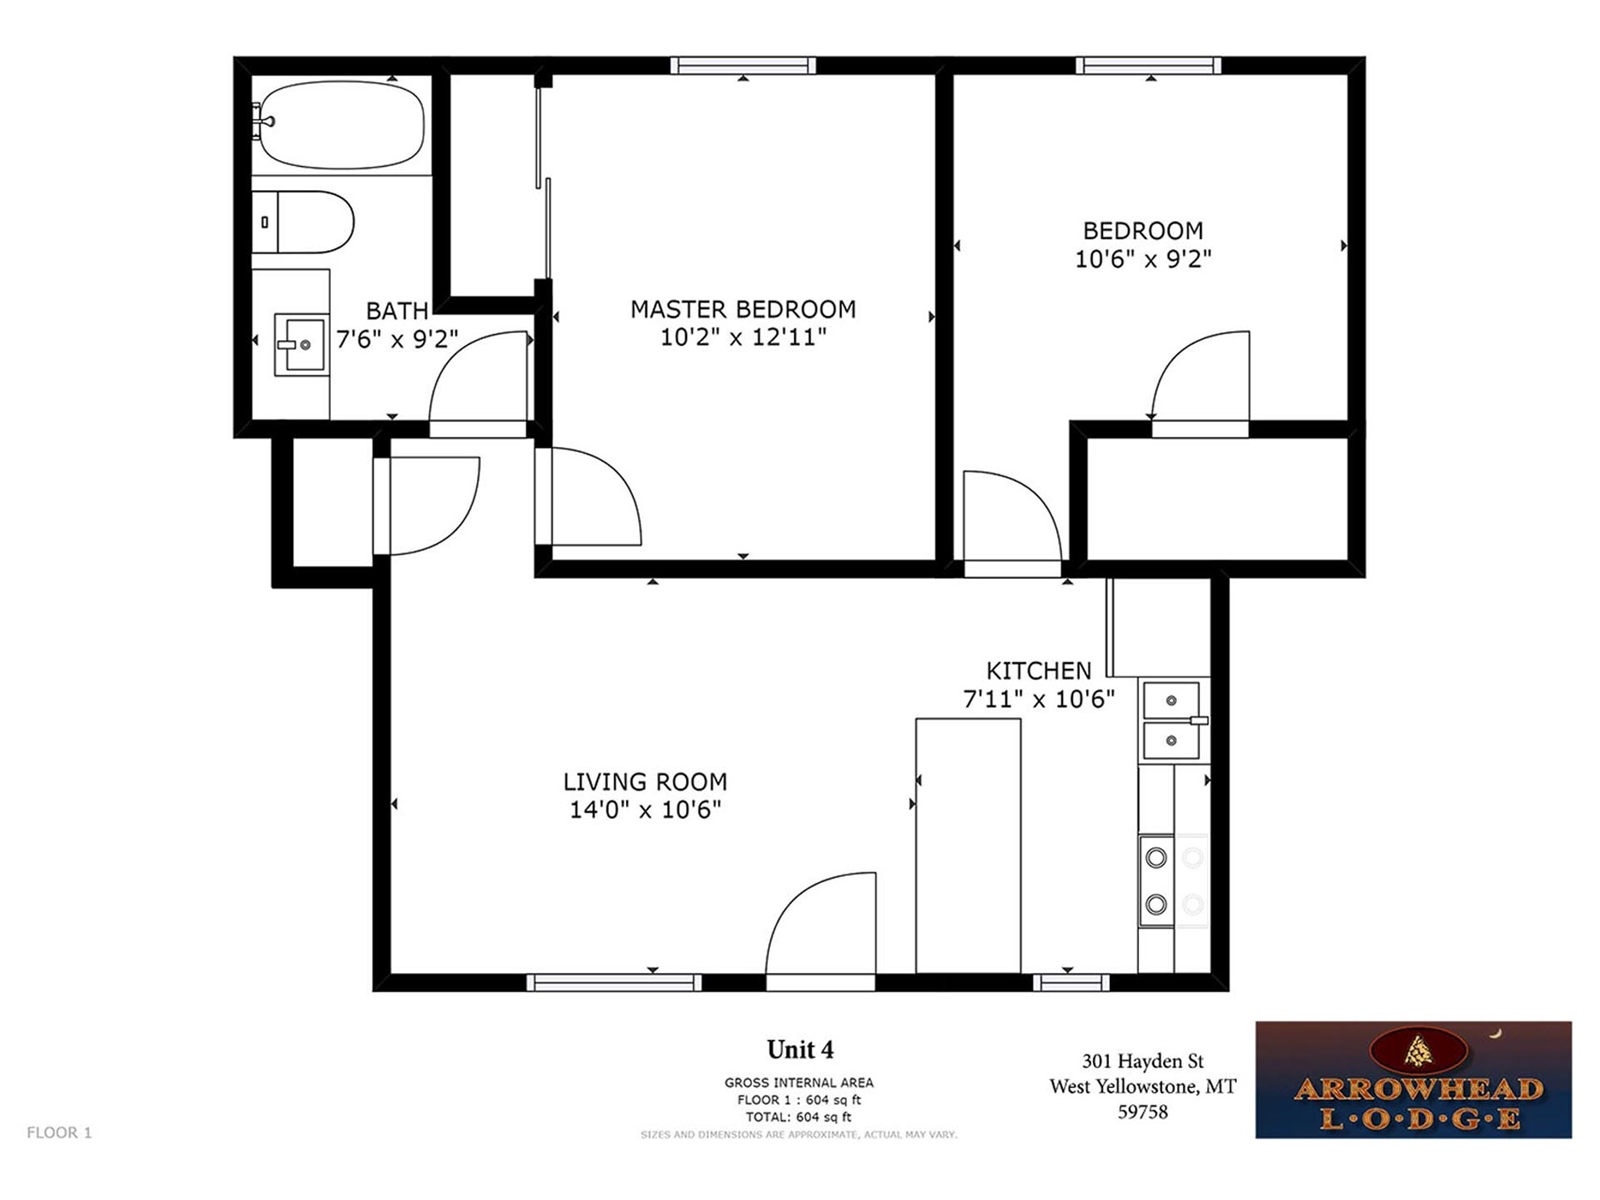 Floor Plan for Arrowhead Condos Unit 4